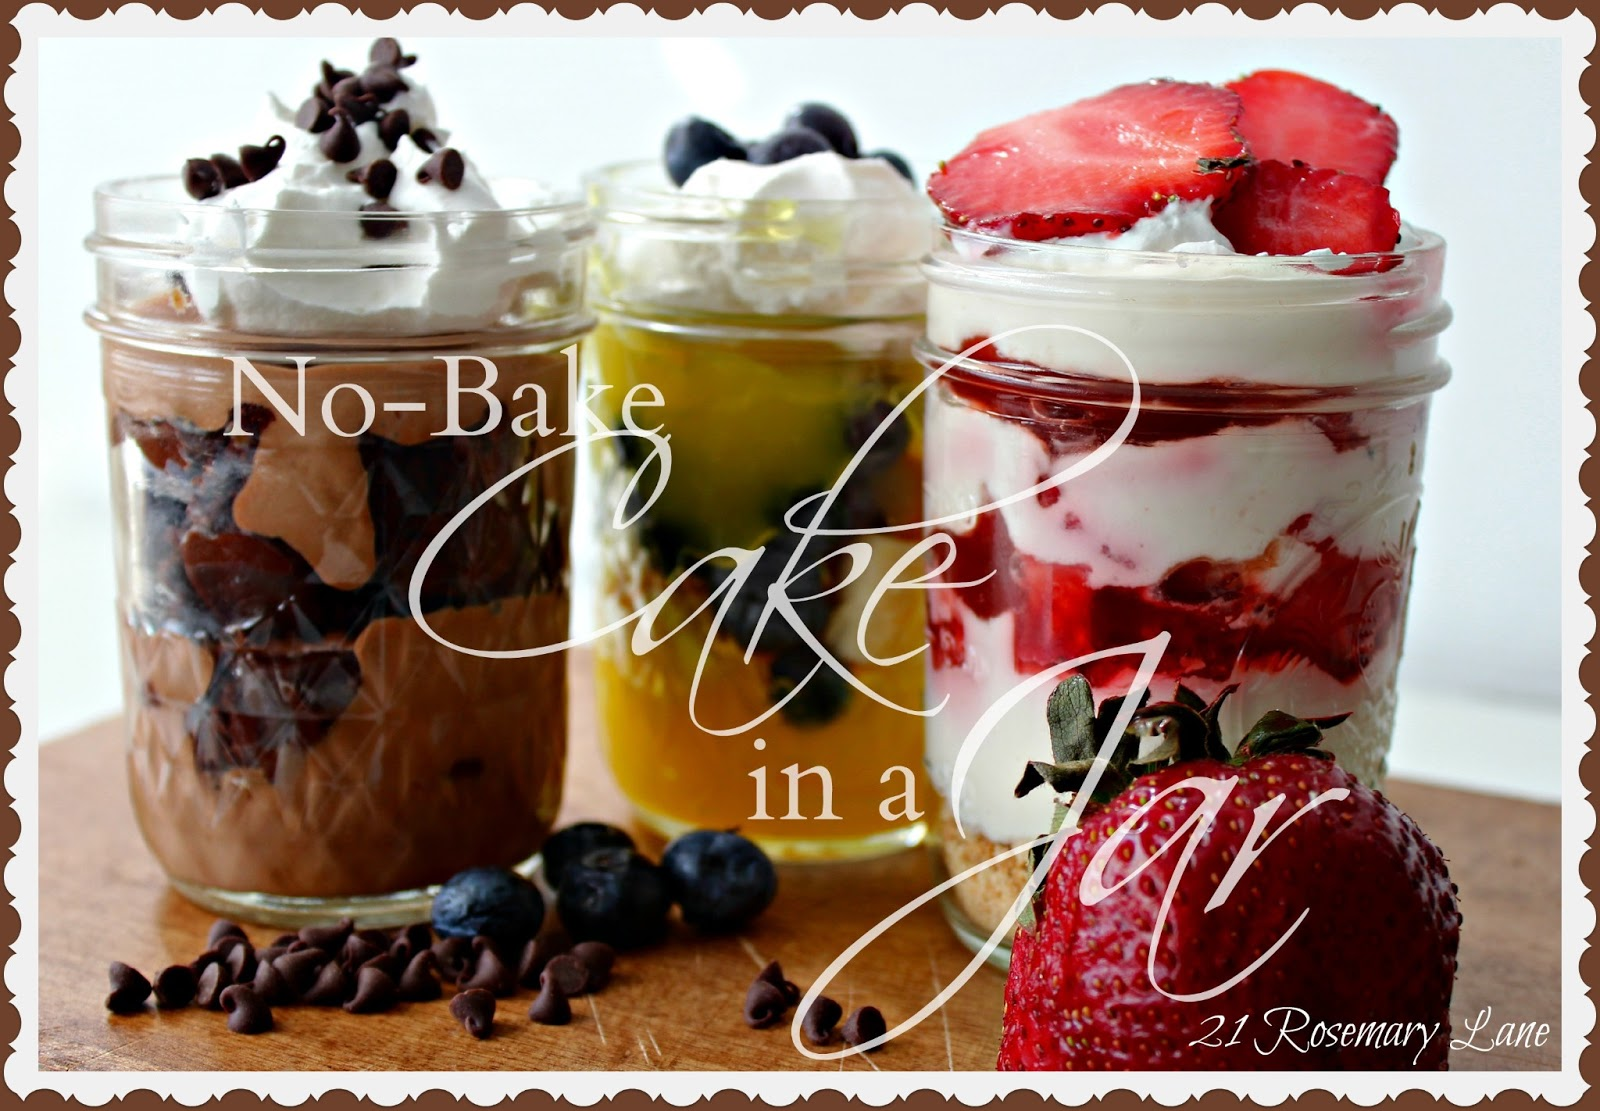 21 Rosemary Lane: All You Need is a Spoon ~ No-Bake Cakes ...